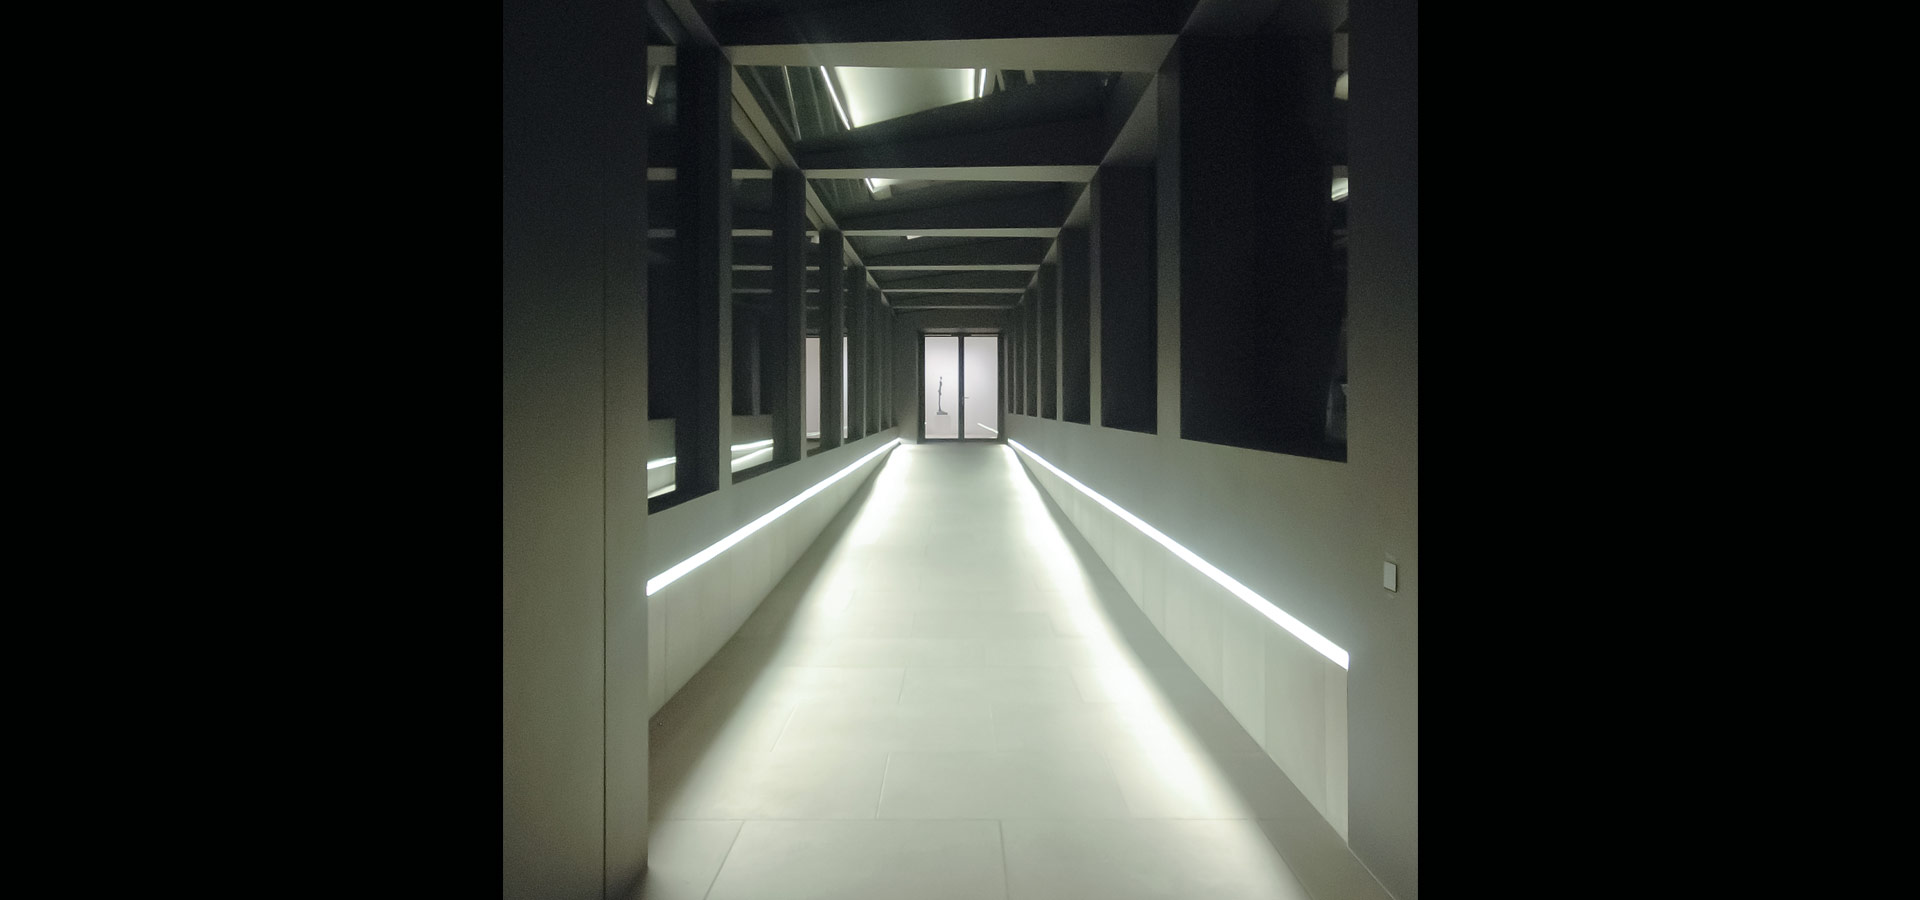 Luxsystem Berggruen architectural lighting linear design 20.2